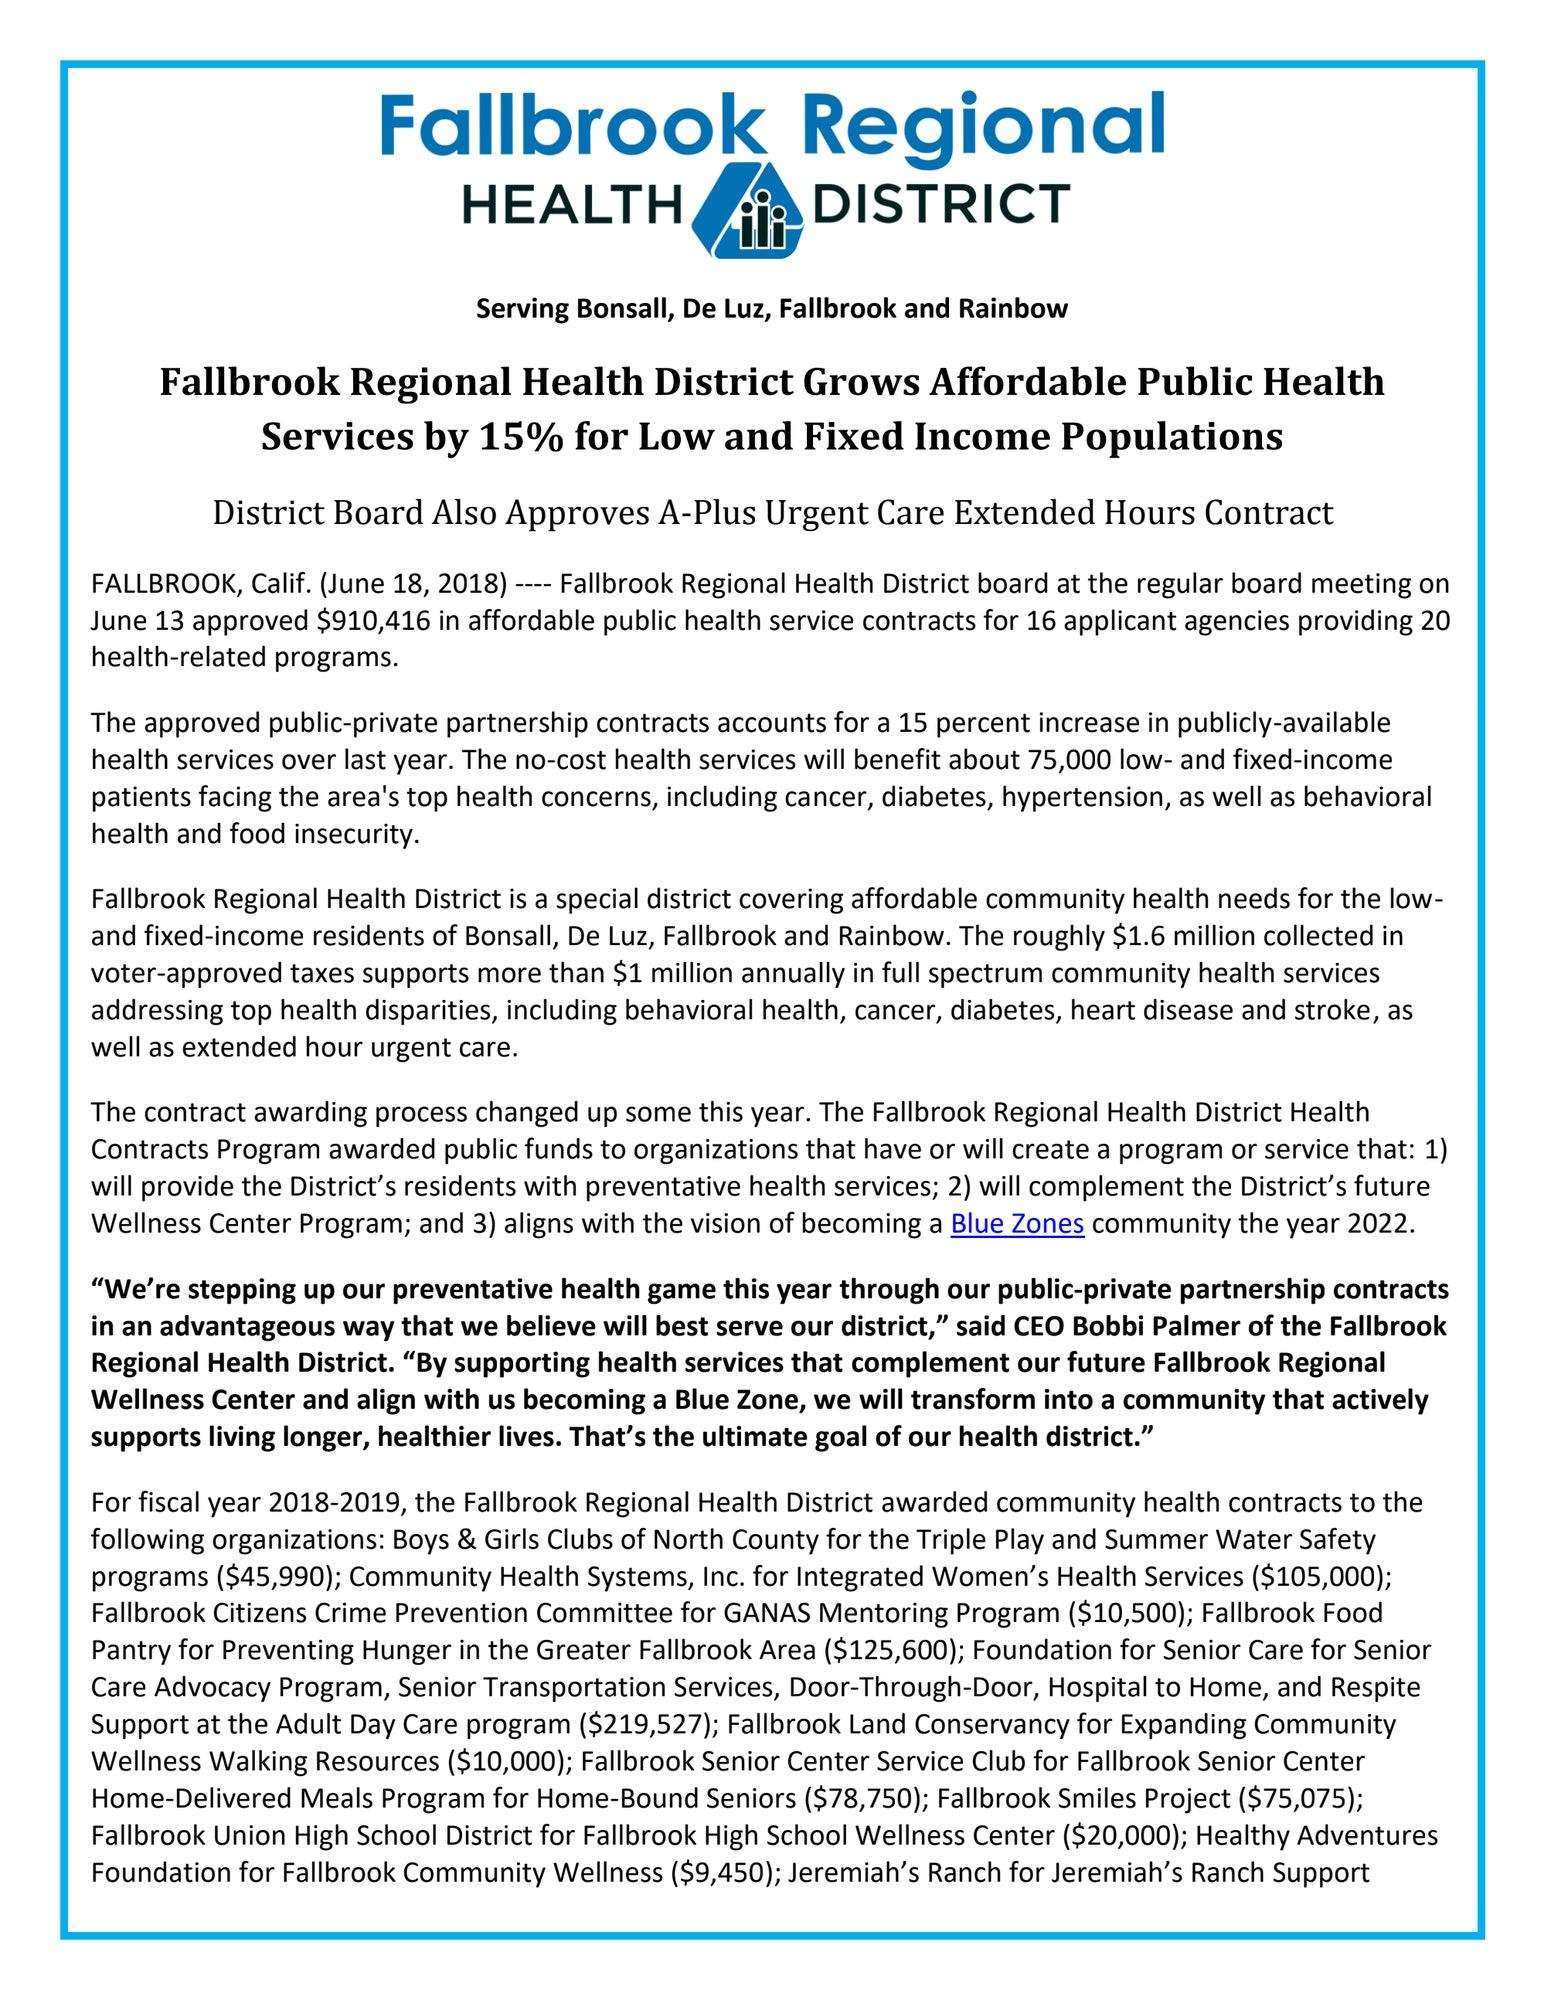 "Fallbrook Regional Health District Grows Affordable Public Health Services by 15% for Low and Fixed Income Populations District Board Also Approves A-Plus Urgent Care Extended Hours Contract FALLBROOK, Calif. (June 18, 2018) ---- Fallbrook Regional Health District board at the regular board meeting on June 13 approved $910,416 in affordable public health service contracts for 16 applicant agencies providing 20 health-related programs. The approved public-private partnership contracts accounts for a 15 percent increase in publicly-available health services over last year. The no-cost health services will benefit about 75,000 low- and fixed-income patients facing the area's top health concerns, including cancer, diabetes, hypertension, as well as behavioral health and food insecurity.   Fallbrook Regional Health District is a special district covering affordable community health needs for the low- and fixed-income residents of Bonsall, De Luz, Fallbrook and Rainbow. The roughly $1.6 million collected in voter-approved taxes supports more than $1 million annually in full spectrum community health services addressing top health disparities, including behavioral health, cancer, diabetes, heart disease and stroke, as well as extended hour urgent care. The contract awarding process changed up some this year. The Fallbrook Regional Health District Health Contracts Program awarded public funds to organizations that have or will create a program or service that: 1) will provide the District's residents with preventative health services; 2) will complement the District's future Wellness Center Program; and 3) aligns with the vision of becoming a Blue Zones community the year 2022. ""We're stepping up our preventative health game this year through our public-private partnership contracts in an advantageous way that we believe will best serve our district,"" said CEO Bobbi Palmer of the Fallbrook Regional Health District. ""By supporting health services that complement our future Fallbrook Regional Wellness Center and align with us becoming a Blue Zone, we will transform into a community that actively supports living longer, healthier lives. That's the ultimate goal of our health district."" For fiscal year 2018-2019, the Fallbrook Regional Health District awarded community health contracts to the following organizations: Boys & Girls Clubs of North County for the Triple Play and Summer Water Safety programs ($45,990); Community Health Systems, Inc. for Integrated Women's Health Services ($105,000); Fallbrook Citizens Crime Prevention Committee for GANAS Mentoring Program ($10,500); Fallbrook Food Pantry for Preventing Hunger in the Greater Fallbrook Area ($125,600); Foundation for Senior Care for Senior Care Advocacy Program, Senior Transportation Services, Door-Through-Door, Hospital to Home, and Respite Support at the Adult Day Care program ($219,527); Fallbrook Land Conservancy for Expanding Community Wellness Walking Resources ($10,000); Fallbrook Senior Center Service Club for Fallbrook Senior Center Home-Delivered Meals Program for Home-Bound Seniors ($78,750); Fallbrook Smiles Project ($75,075); Fallbrook Union High School District for Fallbrook High School Wellness Center ($20,000); Healthy Adventures Foundation for Fallbrook Community Wellness ($9,450); Jeremiah's Ranch for Jeremiah's Ranch Support"